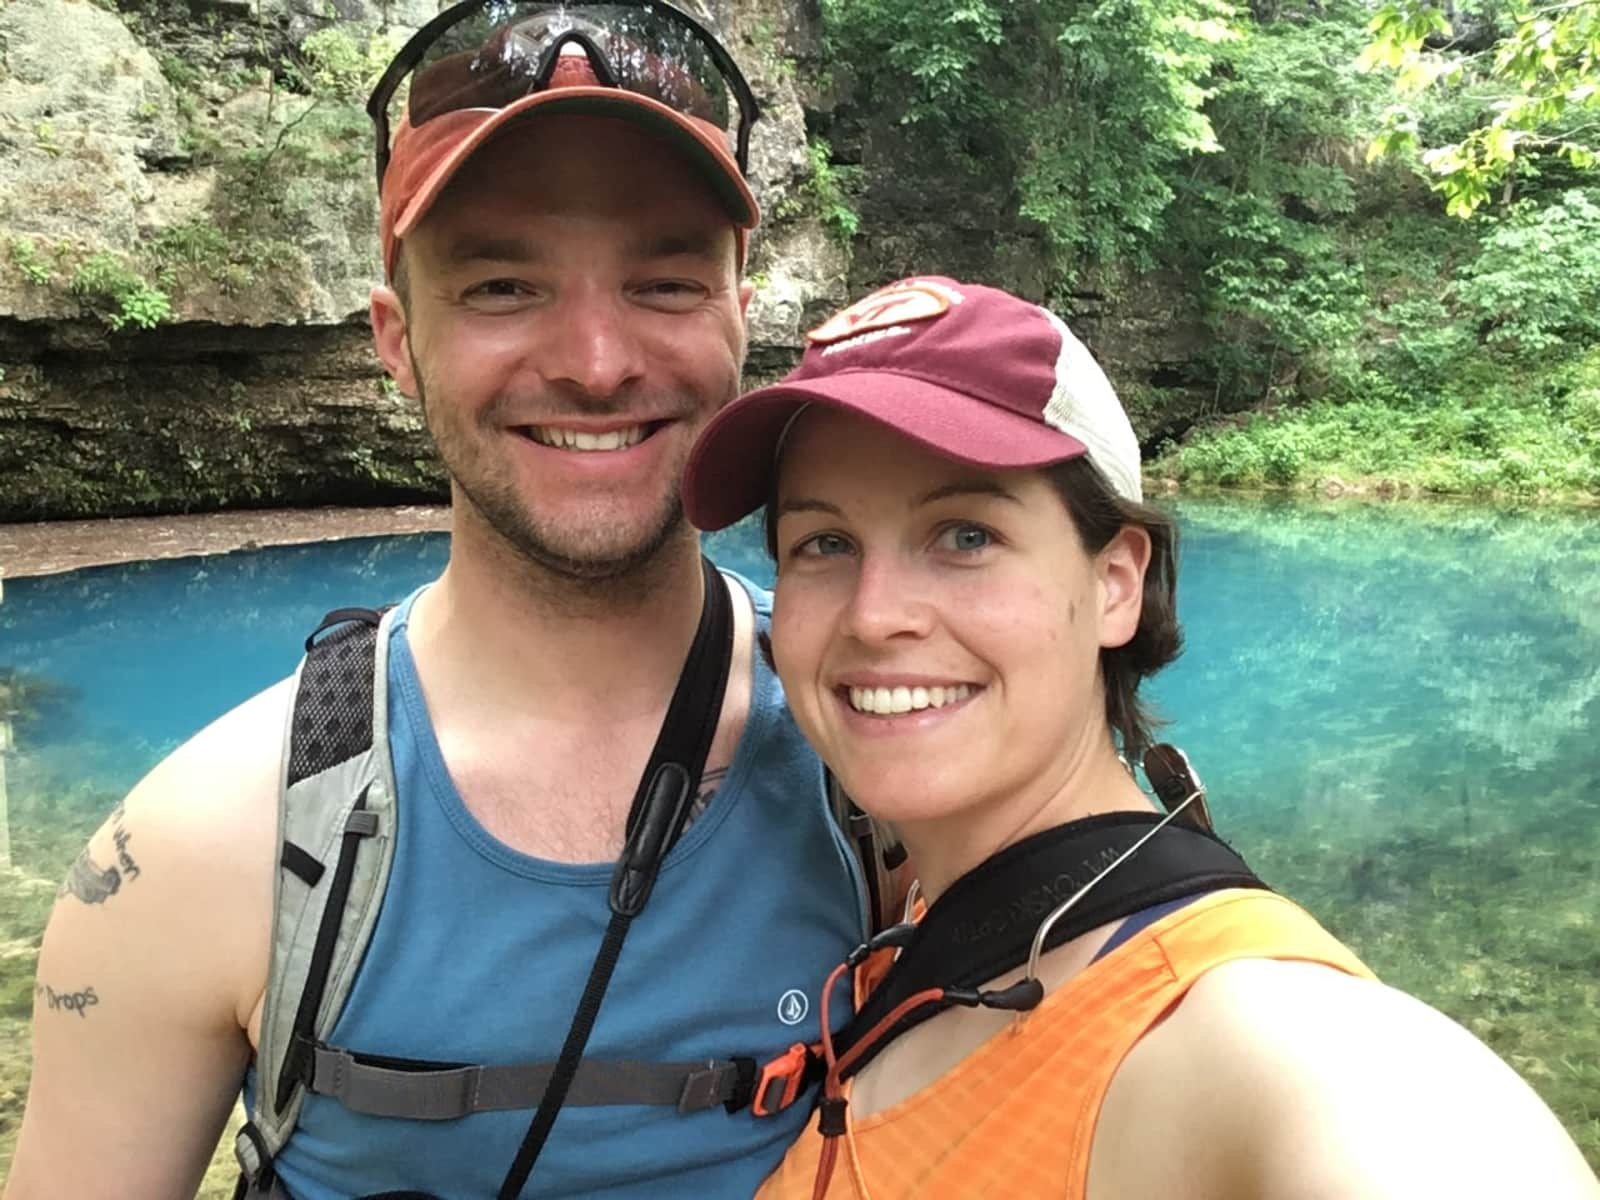 Kathy & Chad from Cape Girardeau, Missouri, United States